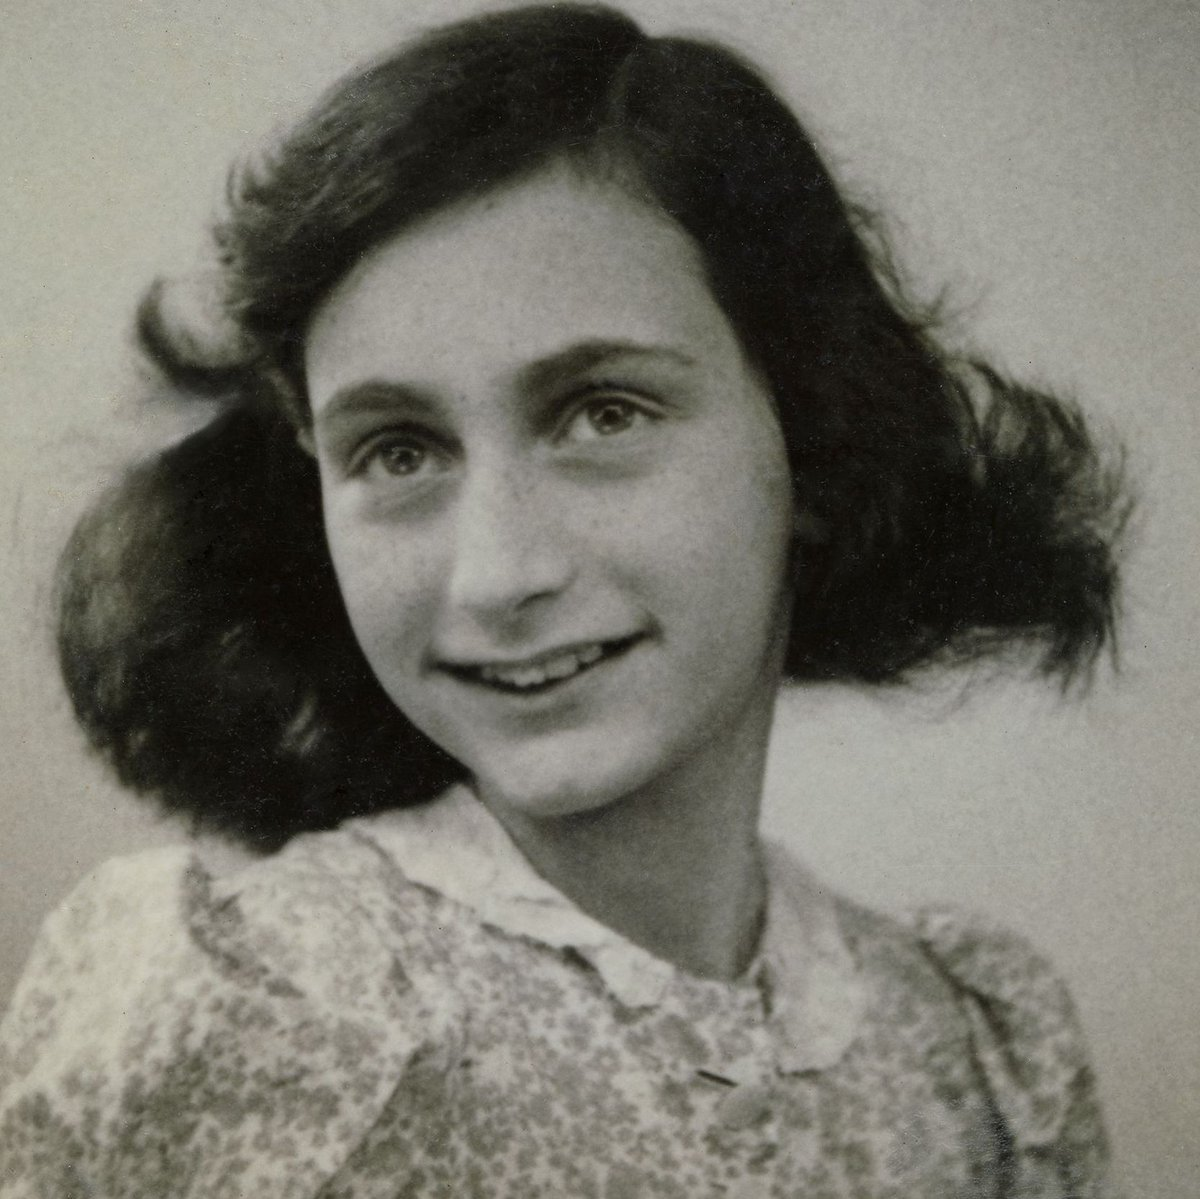 On #NationalRadioDay, #WeRemember how a broadcast calling for diaries of ordinary Dutch people inspired Anne Frank to begin editing for publication the personal diary she had been keeping. Our blessed radio, Anne wrote. It gives us eyes and ears out into the world.